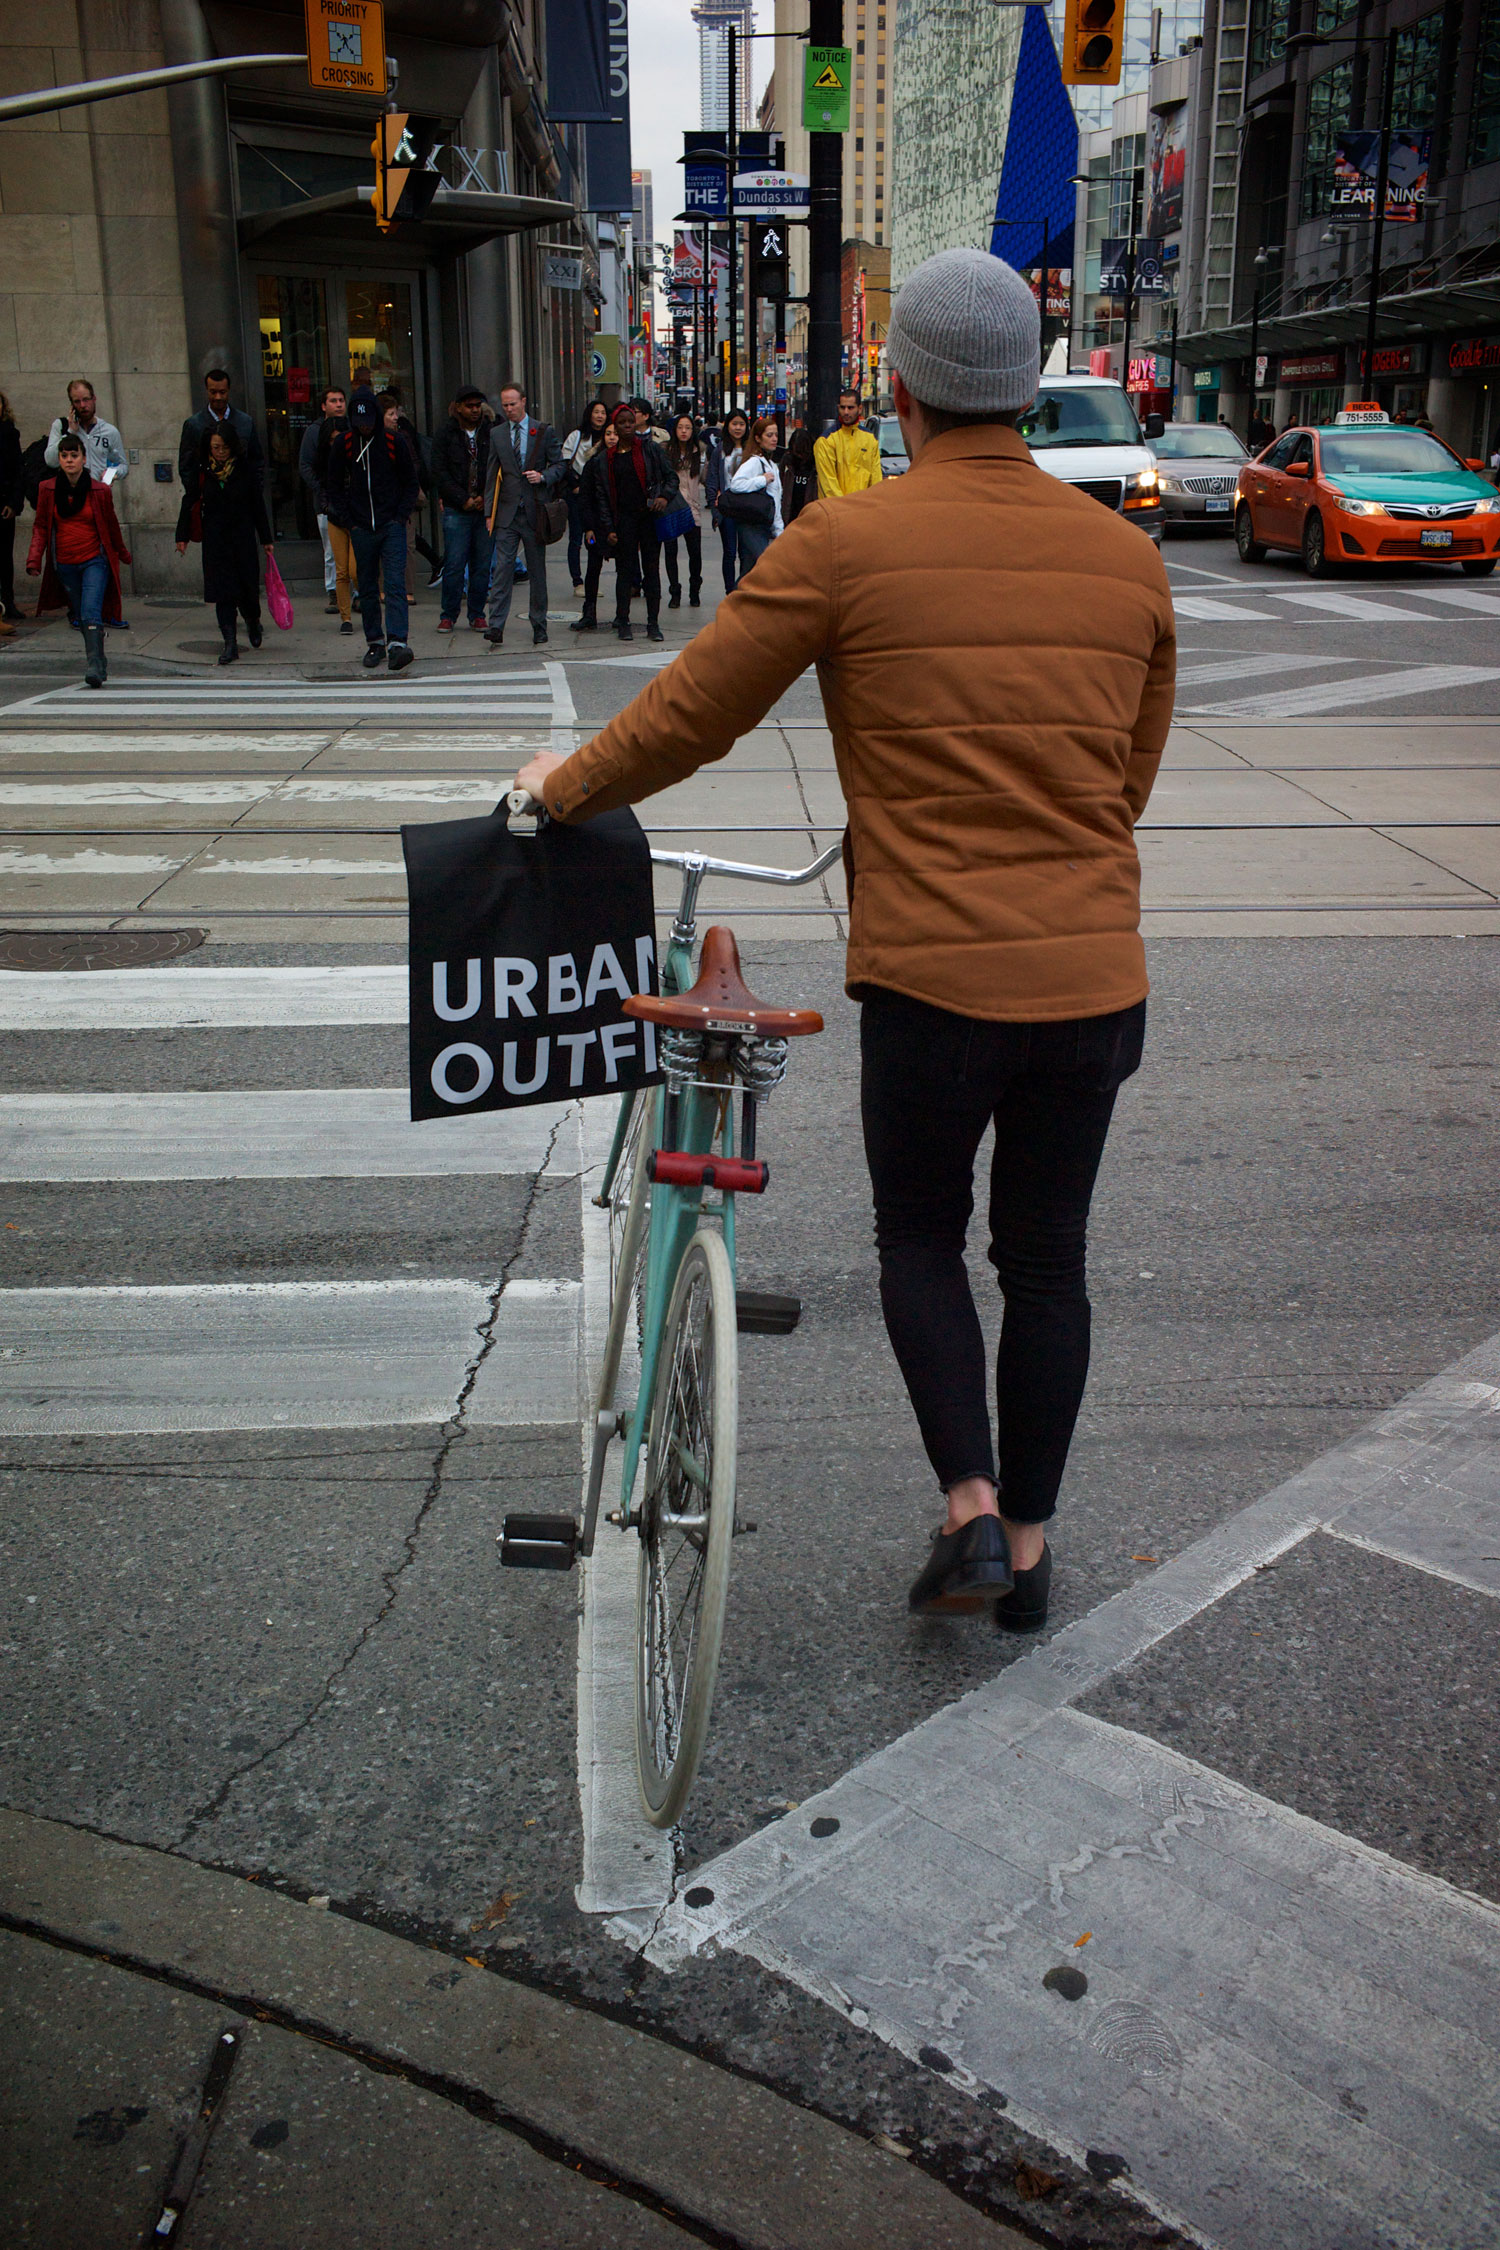 outfitted urbanly